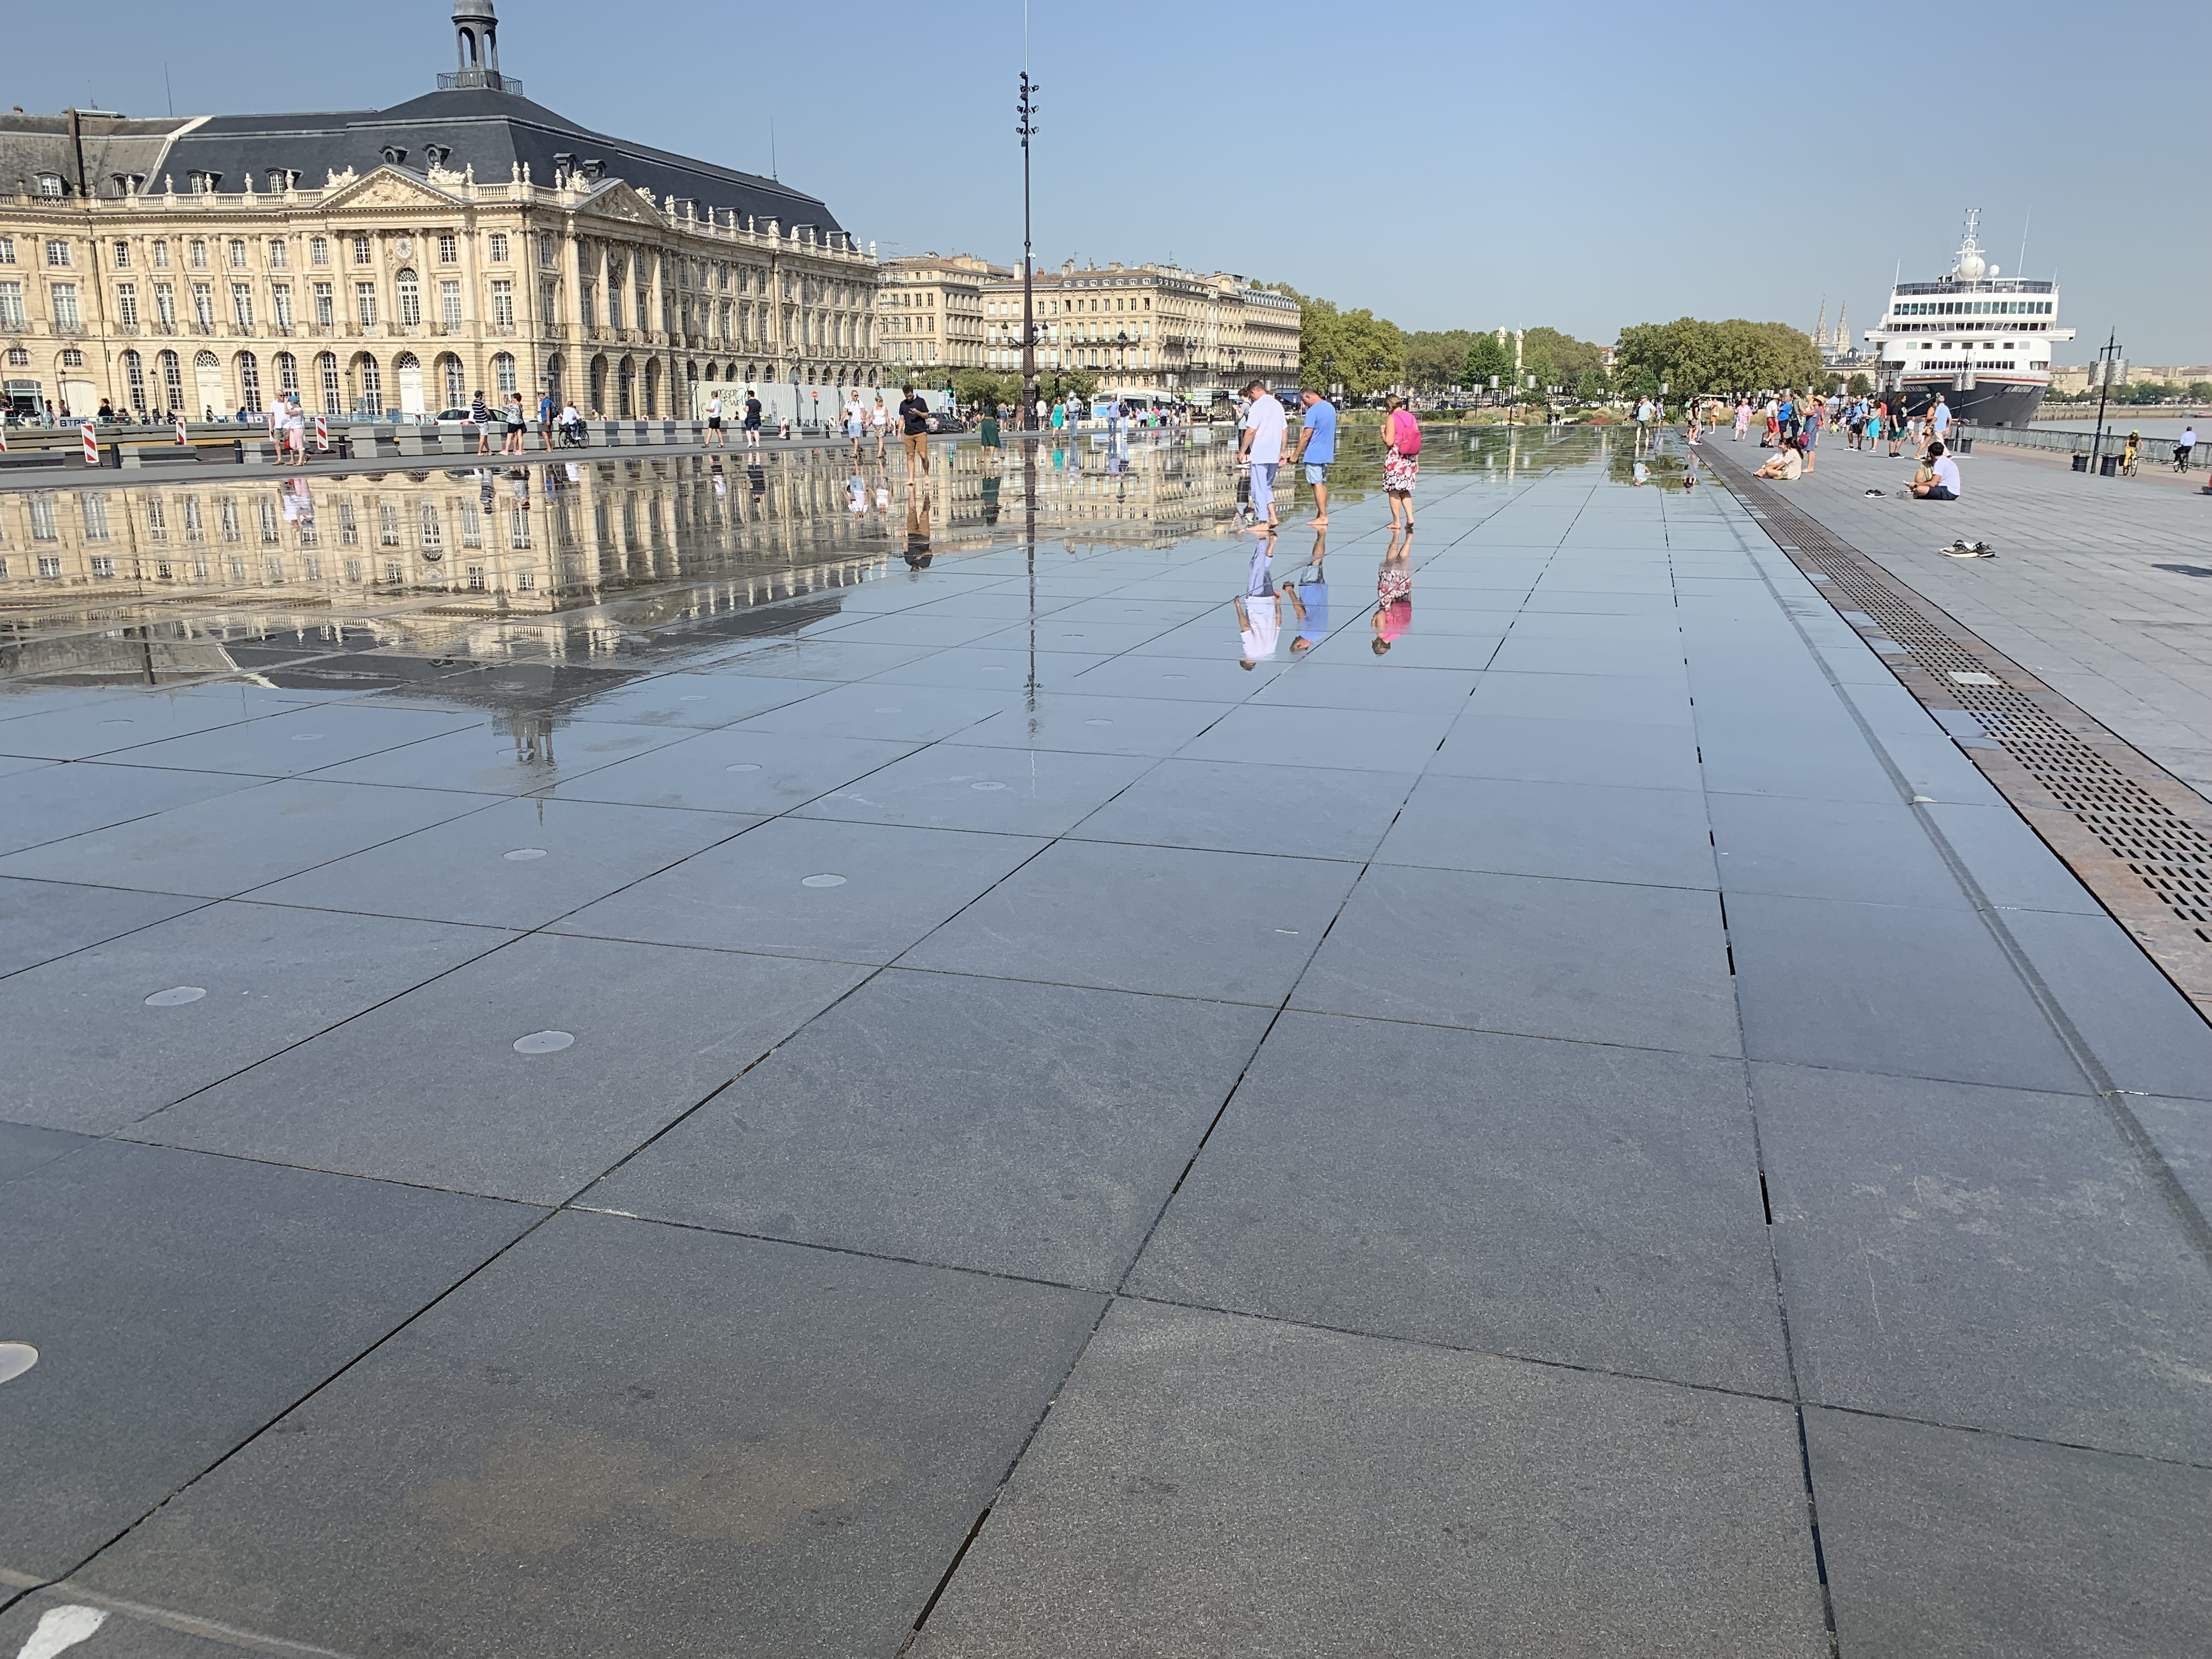 Miroir d'eau in front of Place de la Bourse